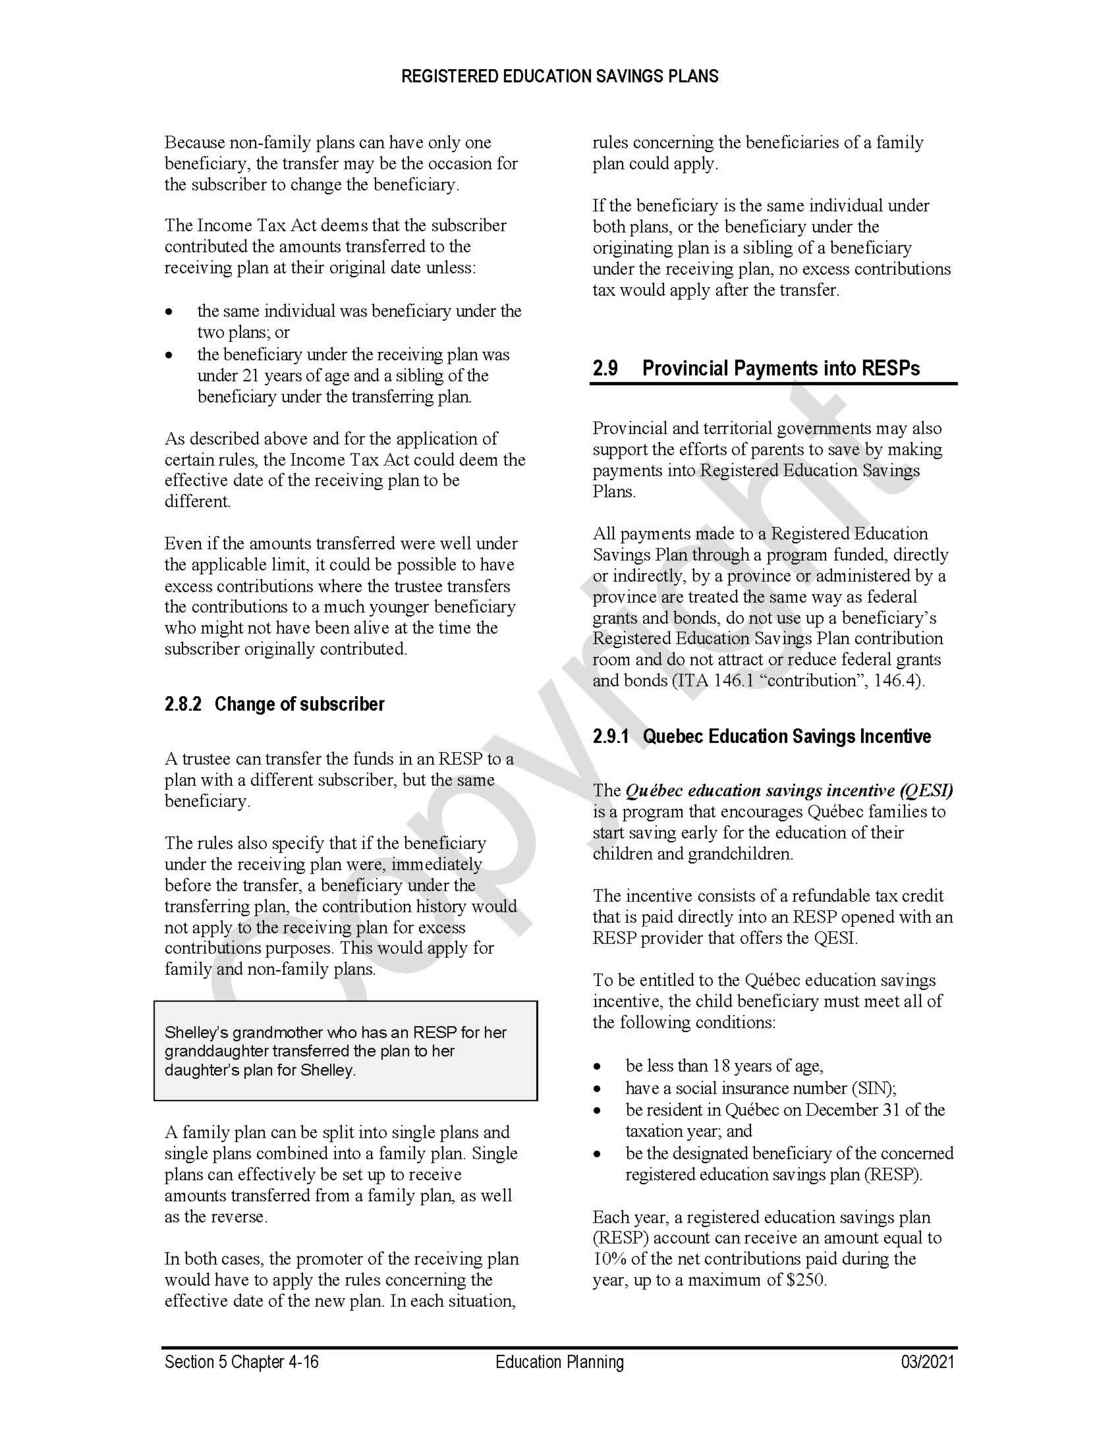 PFP 5-04 RESPs 104 Page_16